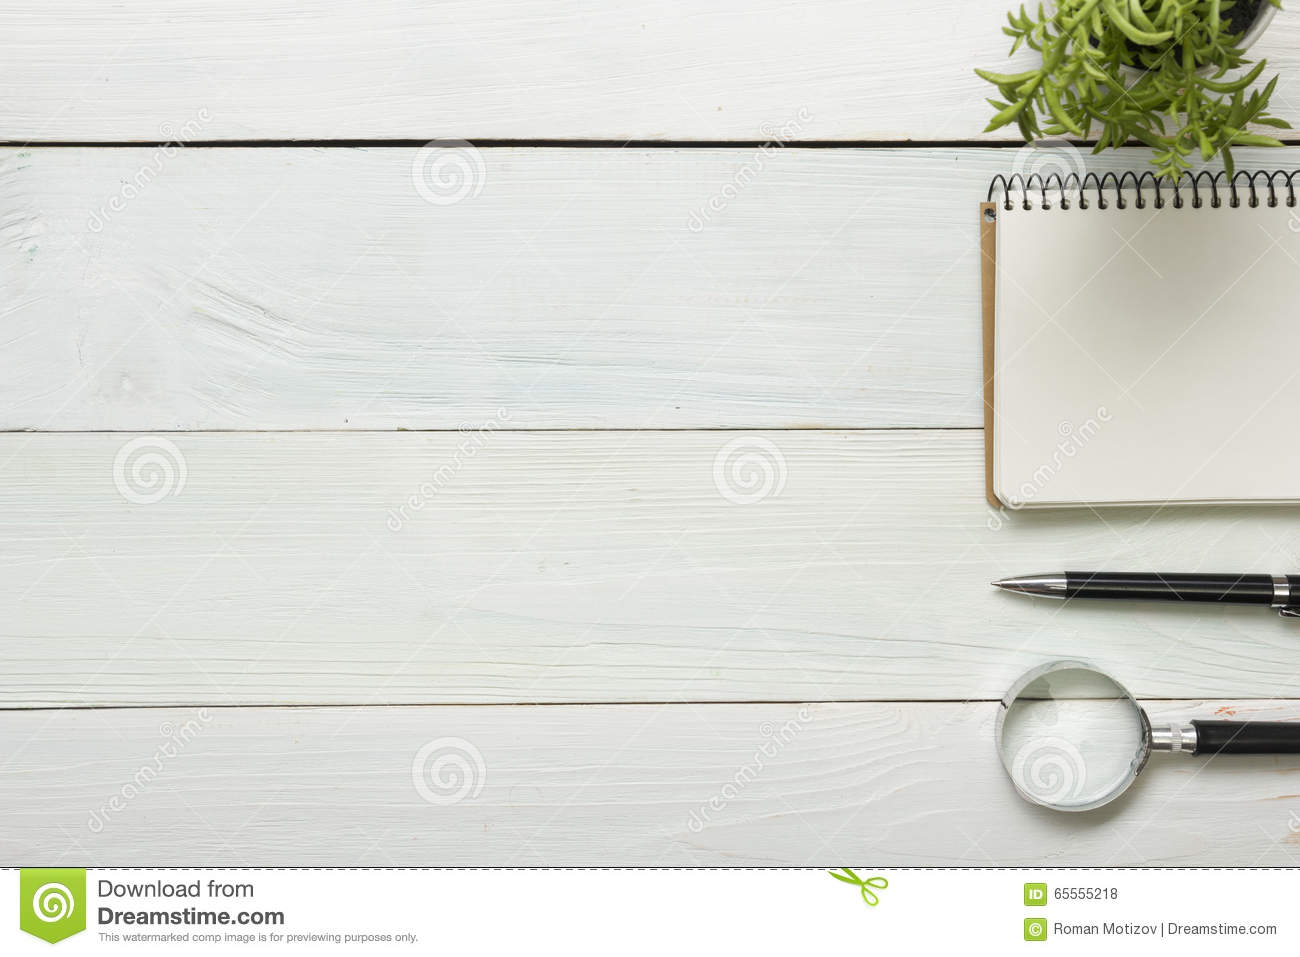 Office desk table with supplies. Top view. Copy space for text. Notepad, pen, magnifying glass, flower